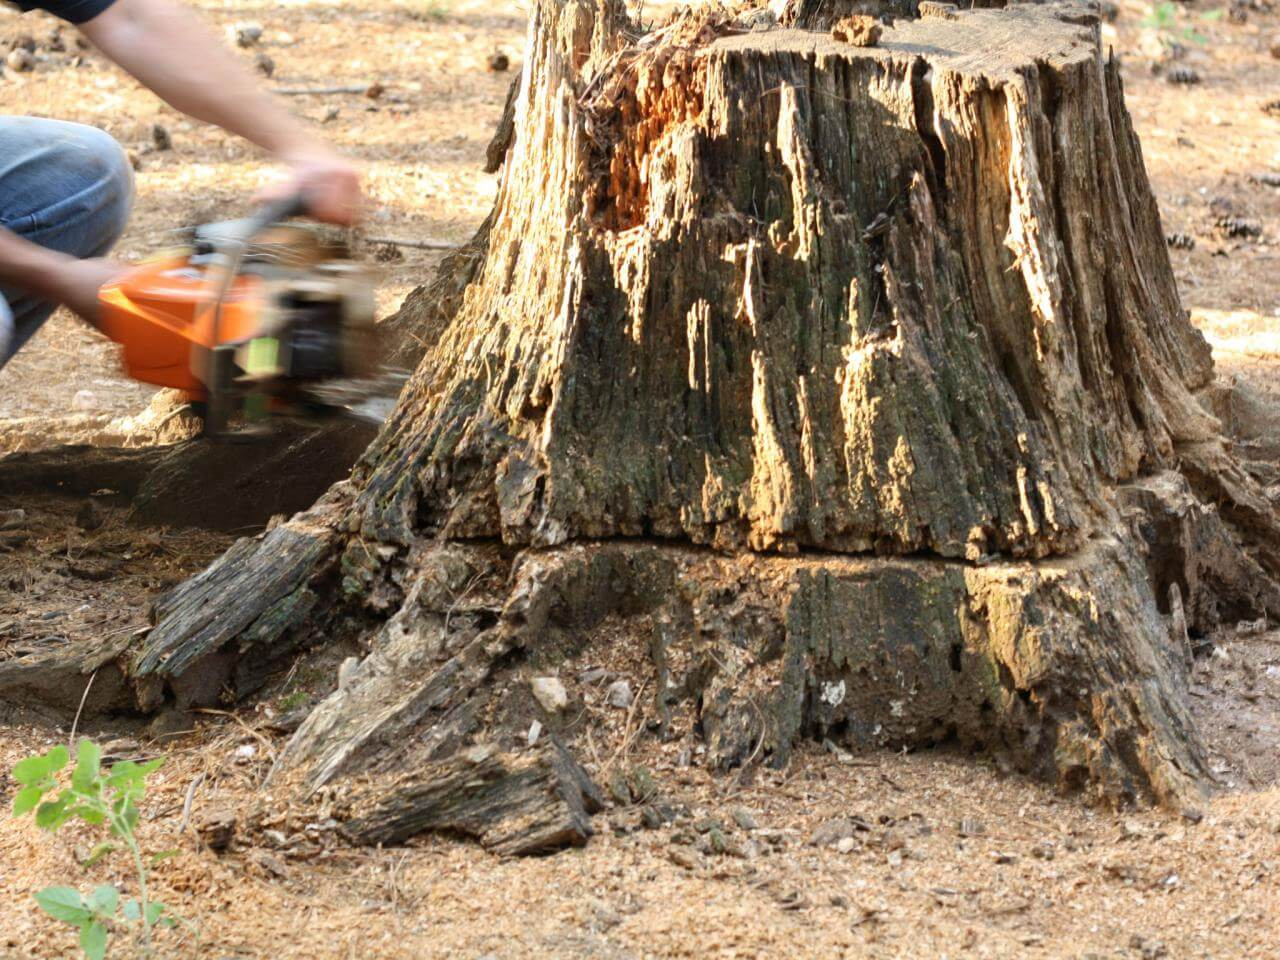 Stump Removal-Escondido CA Tree Trimming and Stump Grinding Services-We Offer Tree Trimming Services, Tree Removal, Tree Pruning, Tree Cutting, Residential and Commercial Tree Trimming Services, Storm Damage, Emergency Tree Removal, Land Clearing, Tree Companies, Tree Care Service, Stump Grinding, and we're the Best Tree Trimming Company Near You Guaranteed!